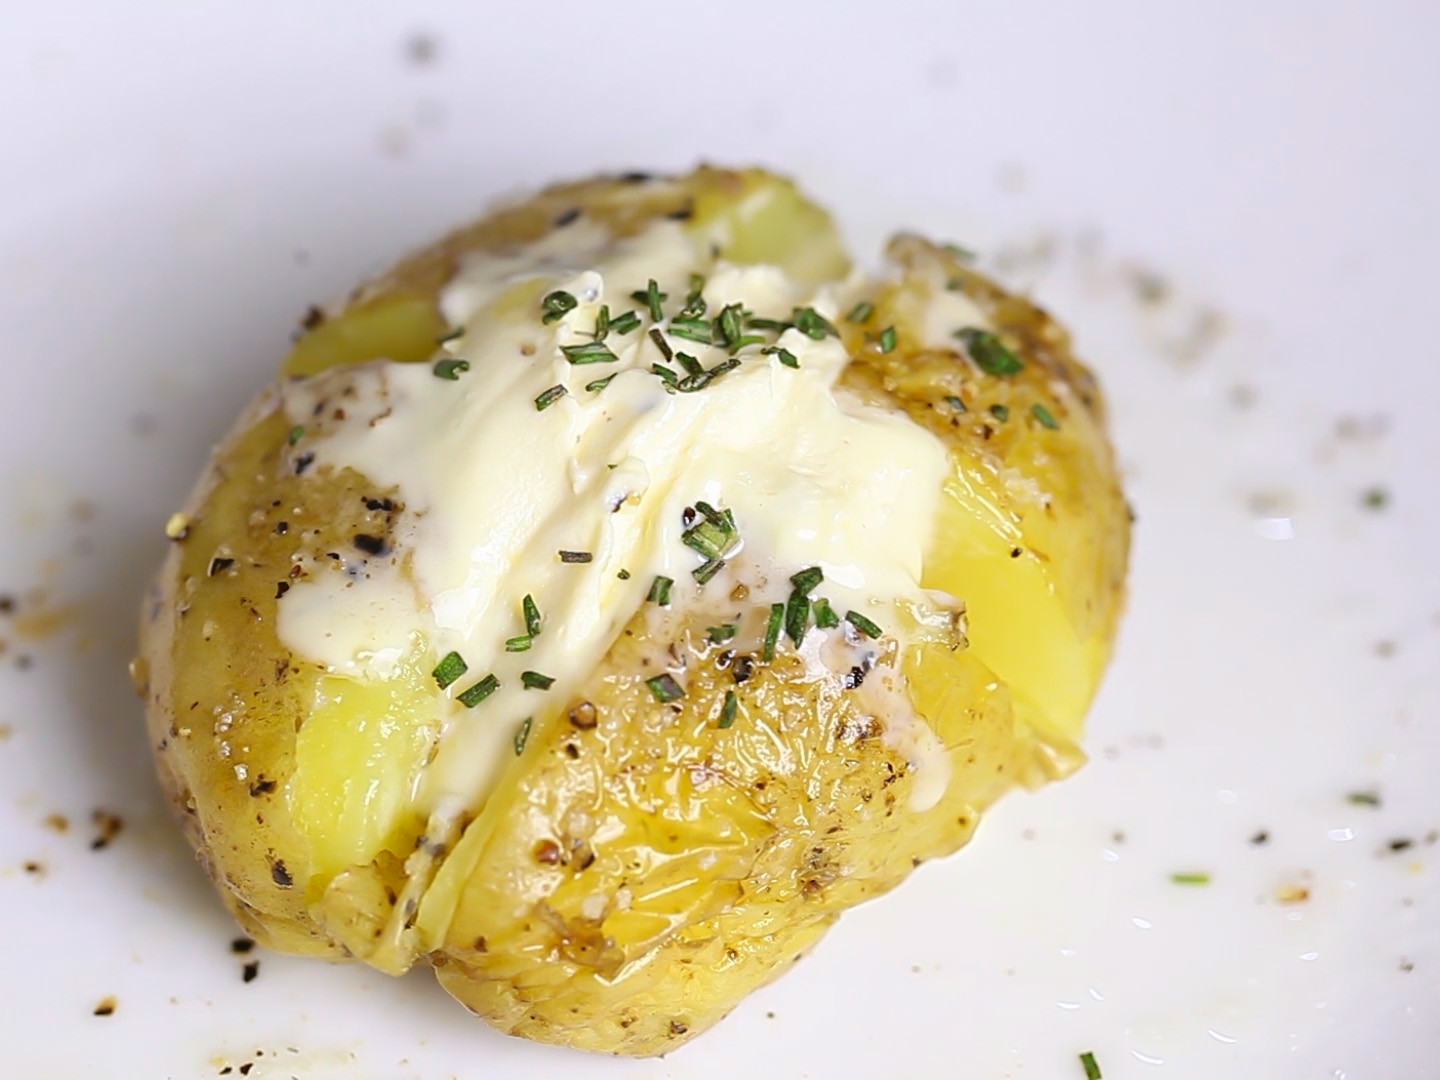 How To Cook Baked Potato In Microwave  How to Bake a Potato in the Microwave 9 Steps with